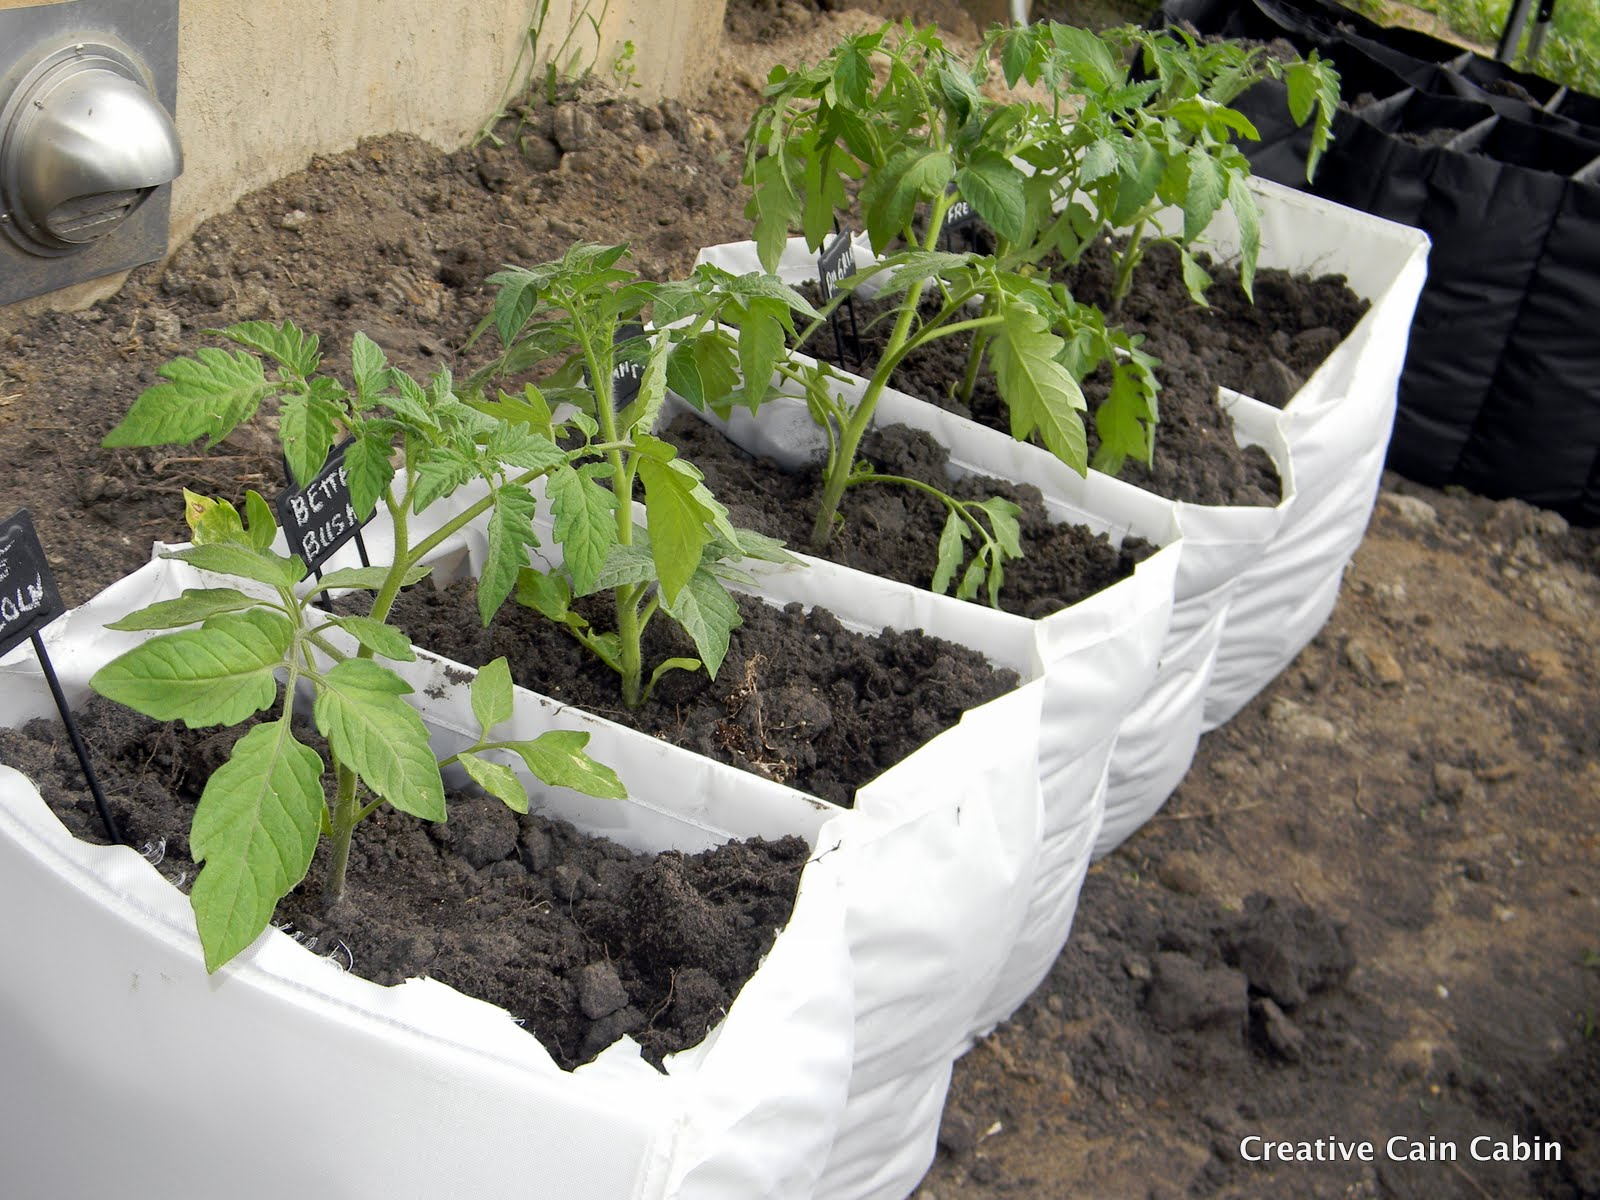 Vegetable Garden in a Bag Creative Cain Cabin